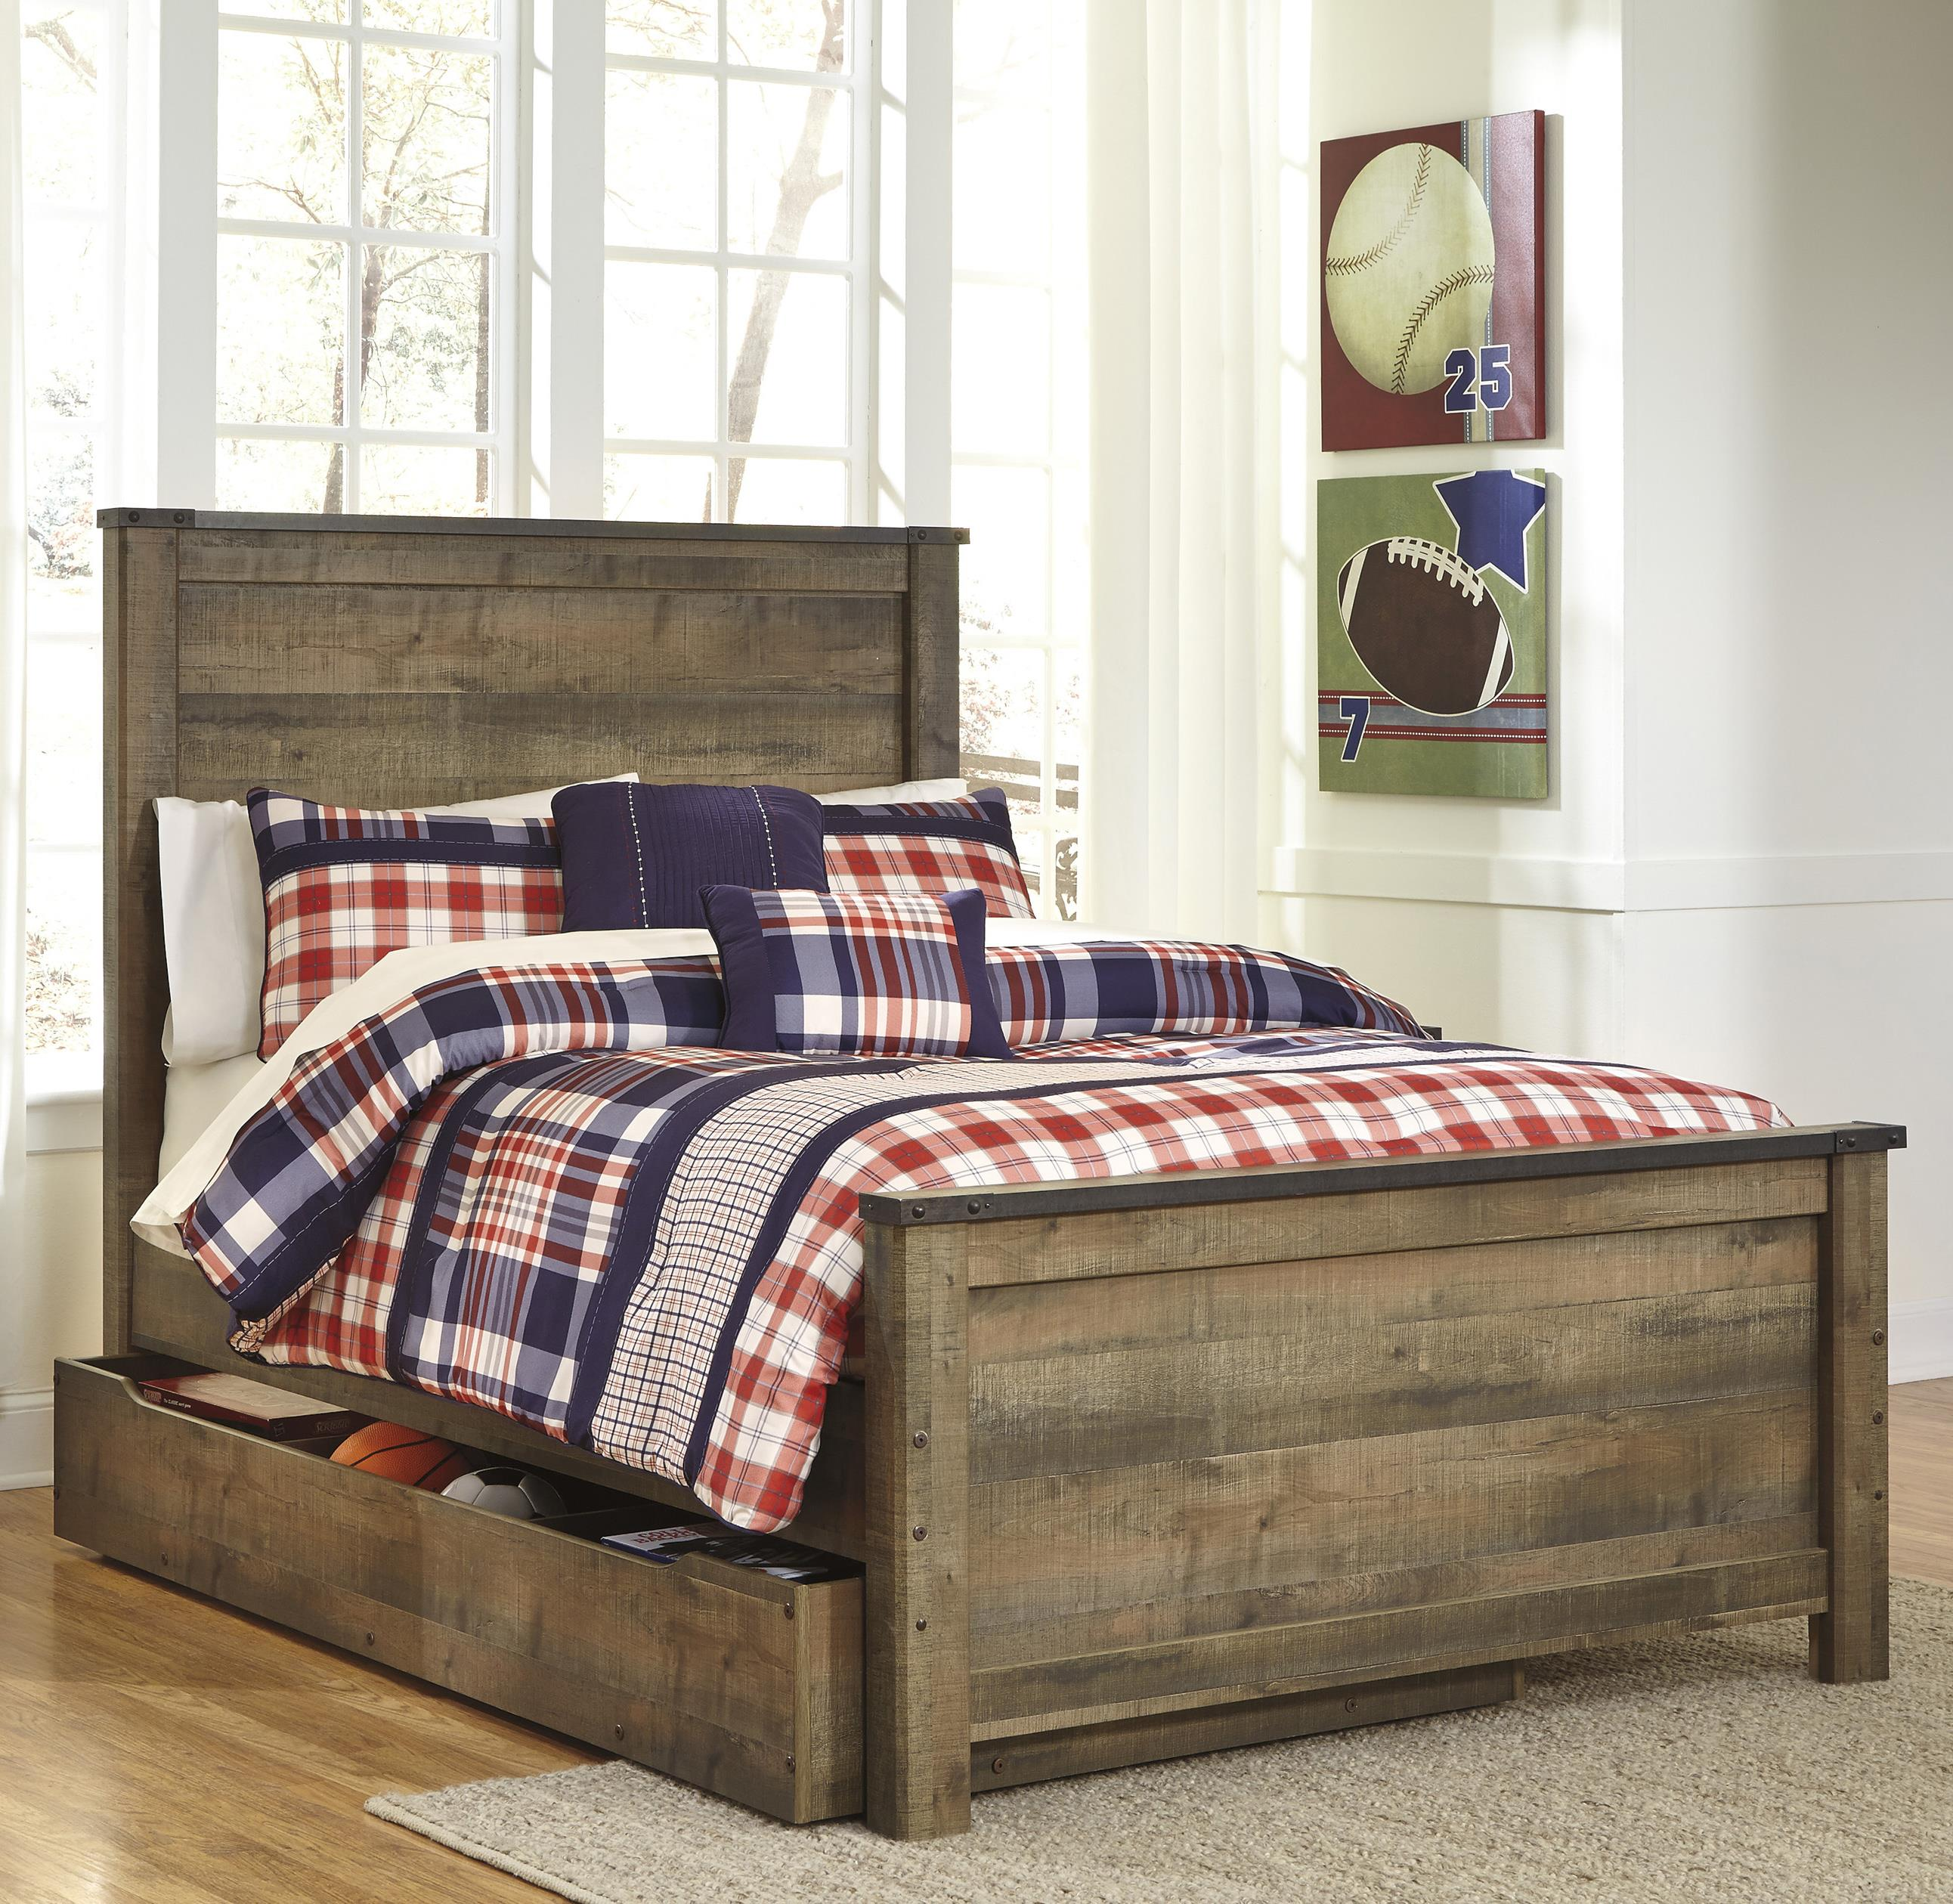 Under Bed Storage Frame Trinell Rustic Look Full Panel Bed With Under Bed Storage Trundle By Signature Design By Ashley At Beck S Furniture